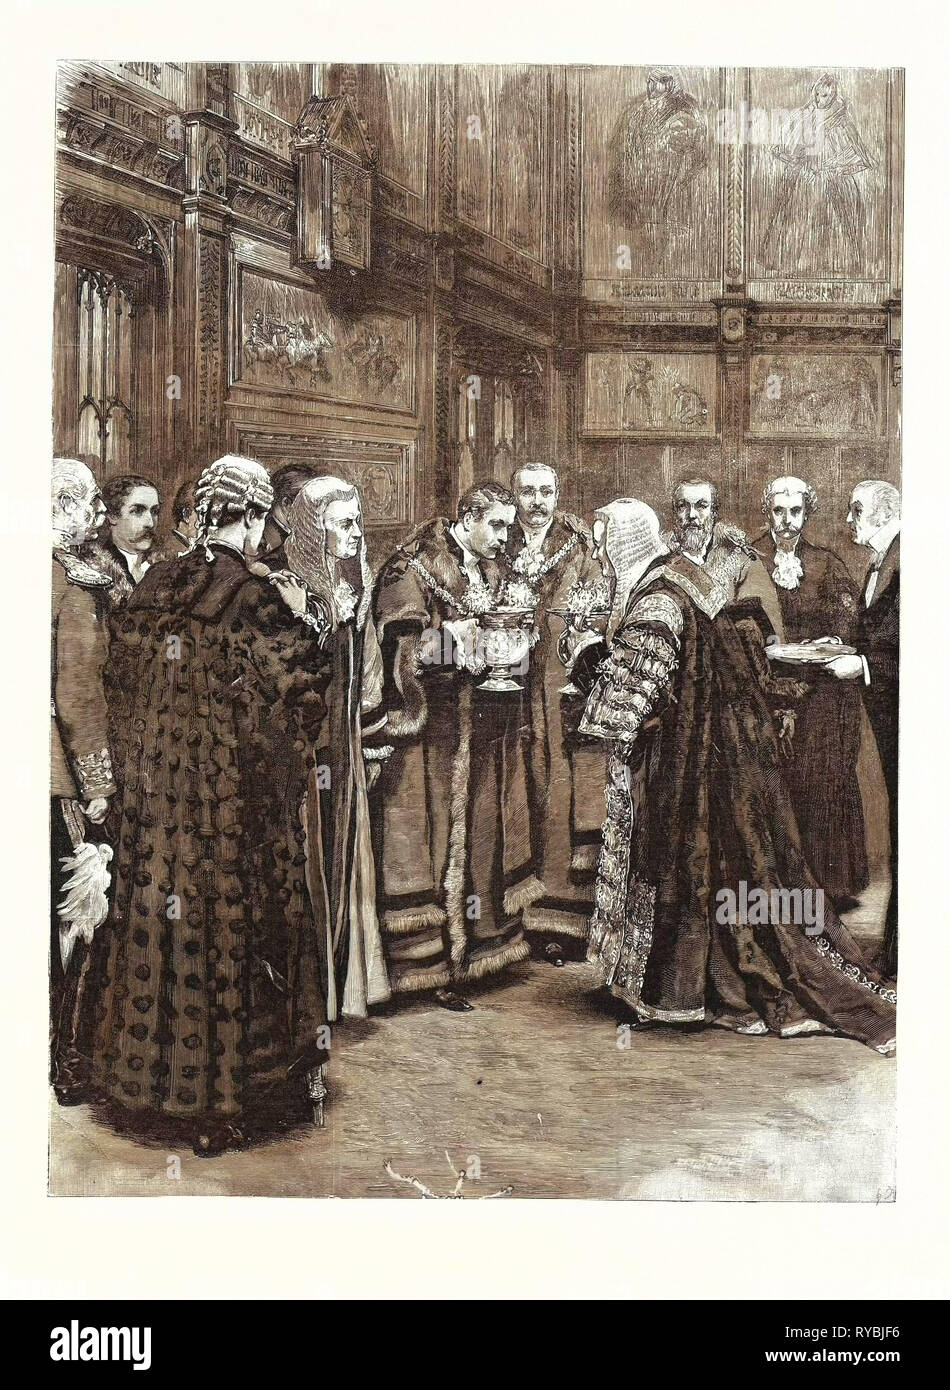 The Lord Chancellor Expressing Her Majesty's Approval of the Election of Mr. Alderman Evans As Lord Mayor Presenting the Loving Cup in the Princes' Chamber of the House of Lords - Stock Image